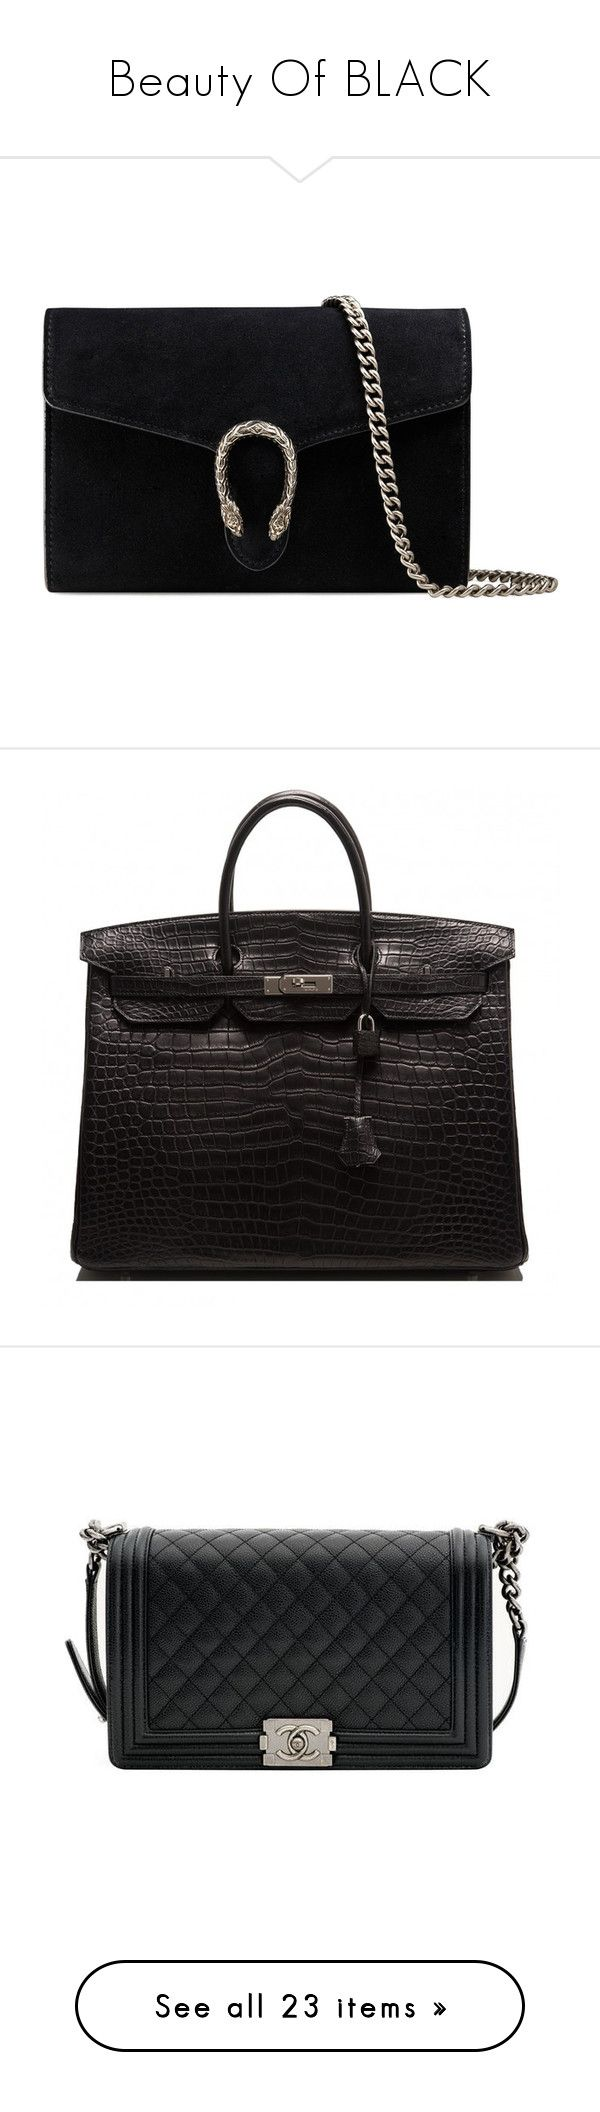 Beauty Of BLACK by tina-abbara on Polyvore featuring polyvore, women's fashion, bags, handbags, purses, gucci, sac, black, chain handbags, chain strap handbag, antique purses, structured handbags, hand bags, accessories, hermès, shoulder bags, leather purses, studded leather handbags, chanel purse, shoulder bag purse, leather handbags, tote bags, structured tote bag, leather tote handbags, leather tote, structured leather tote, tote handbags, lightweight purses, lightweight handbags, pocket…